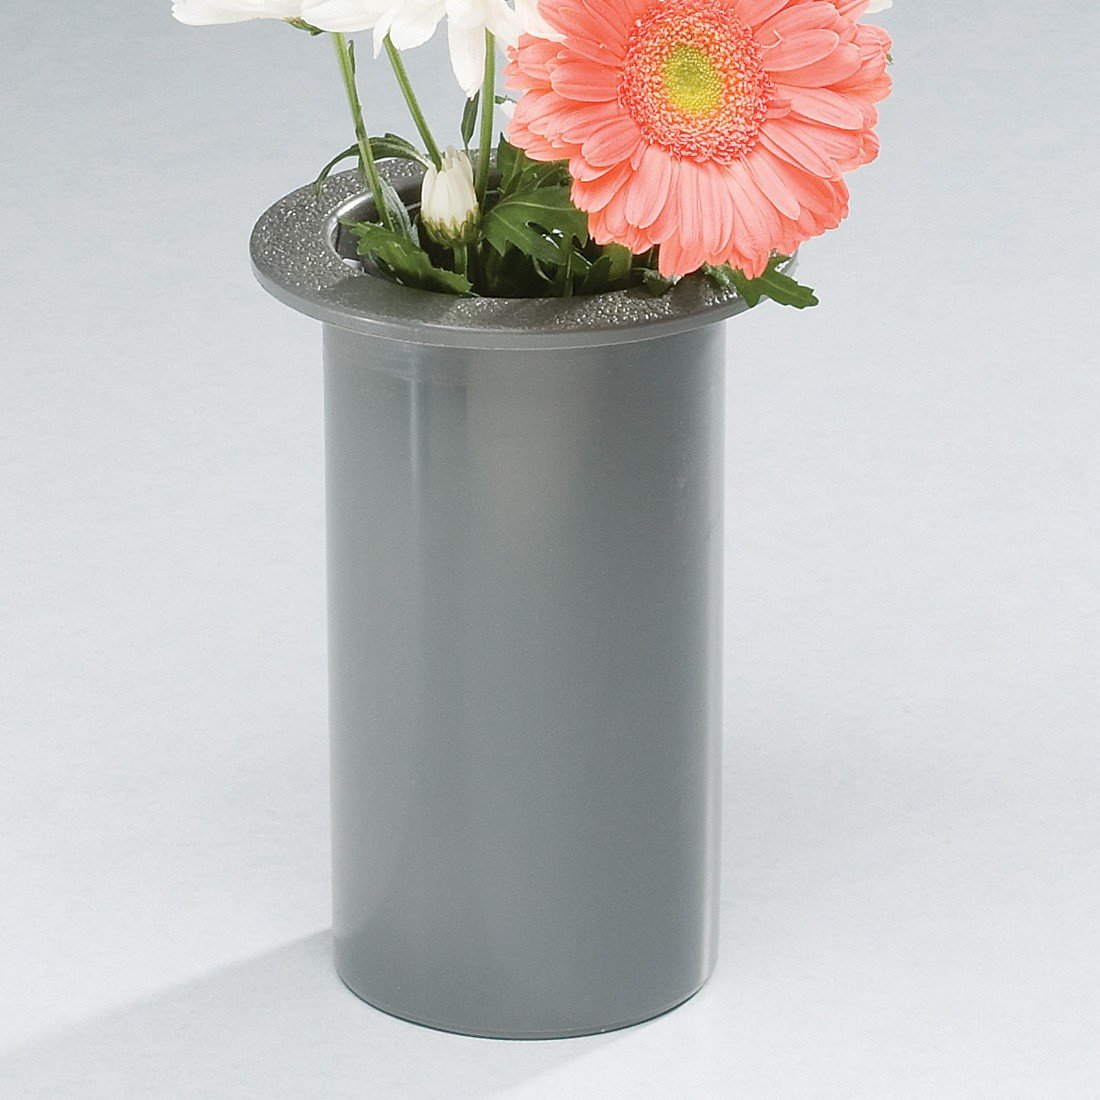 2 best of cemetery vases home idea simplicity silver cemetery vase reviewsmspy